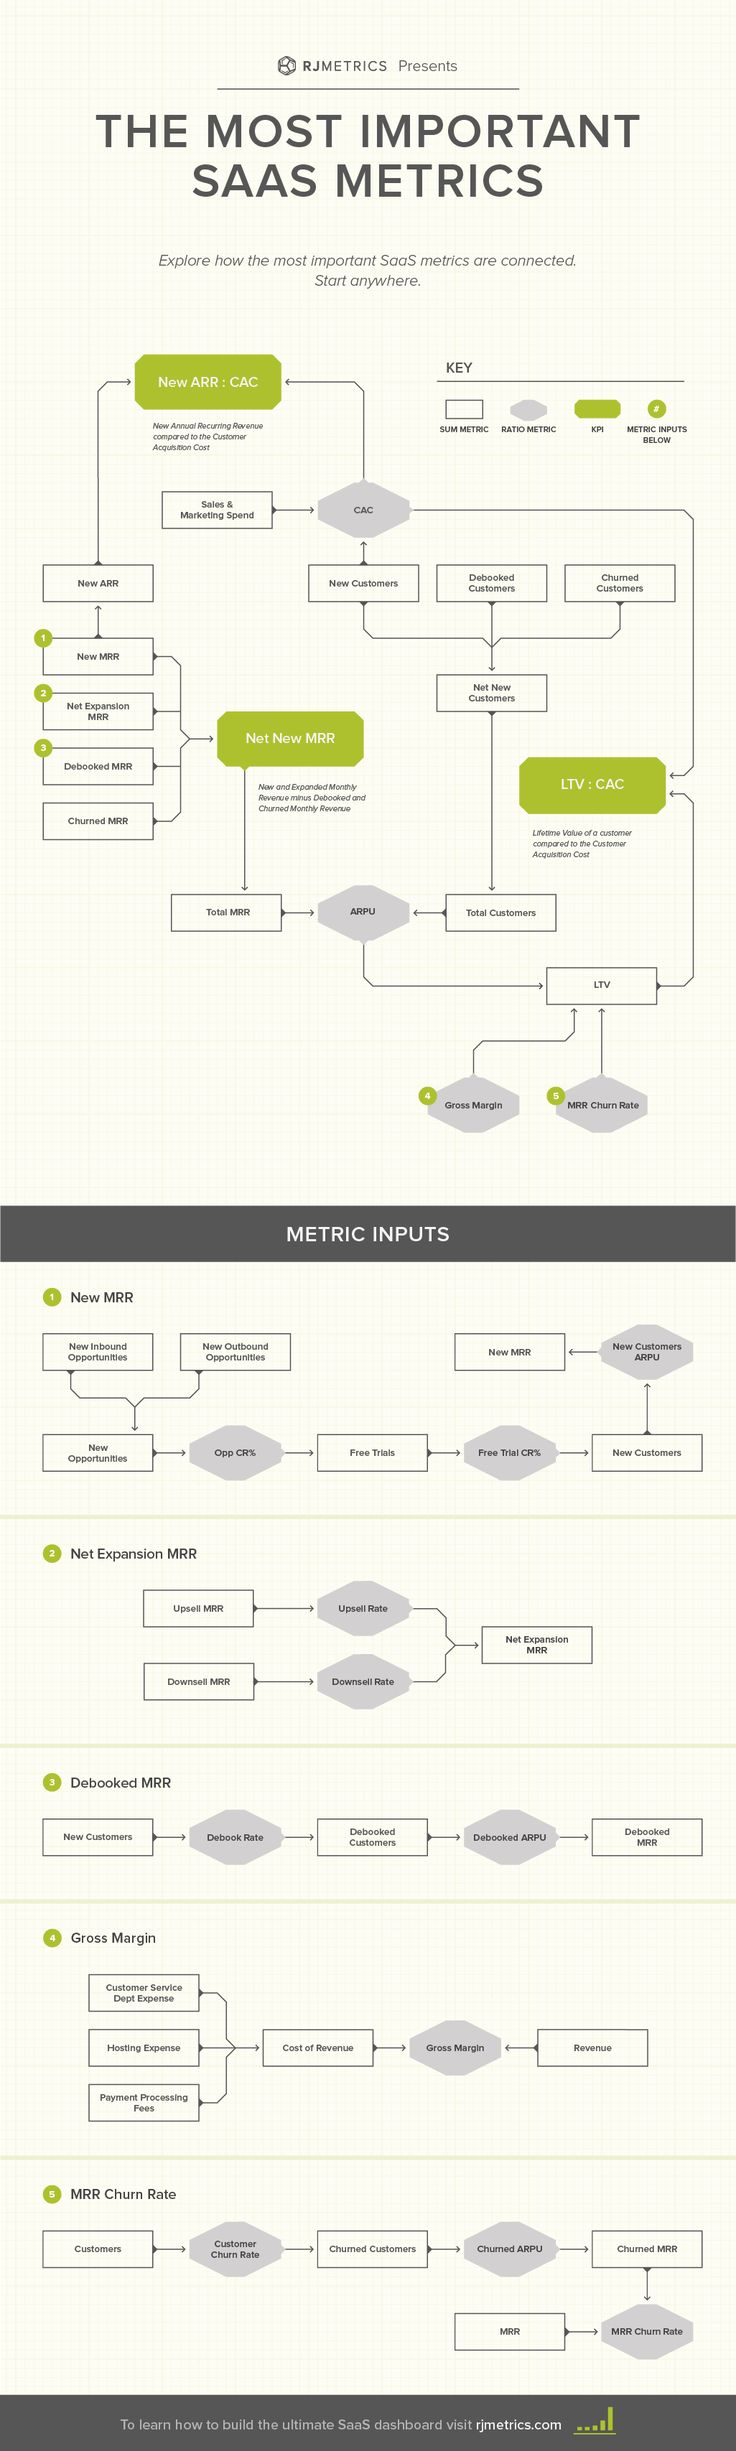 Every Important SaaS Metric in a Single #Infographic - via @rjmetrics blog